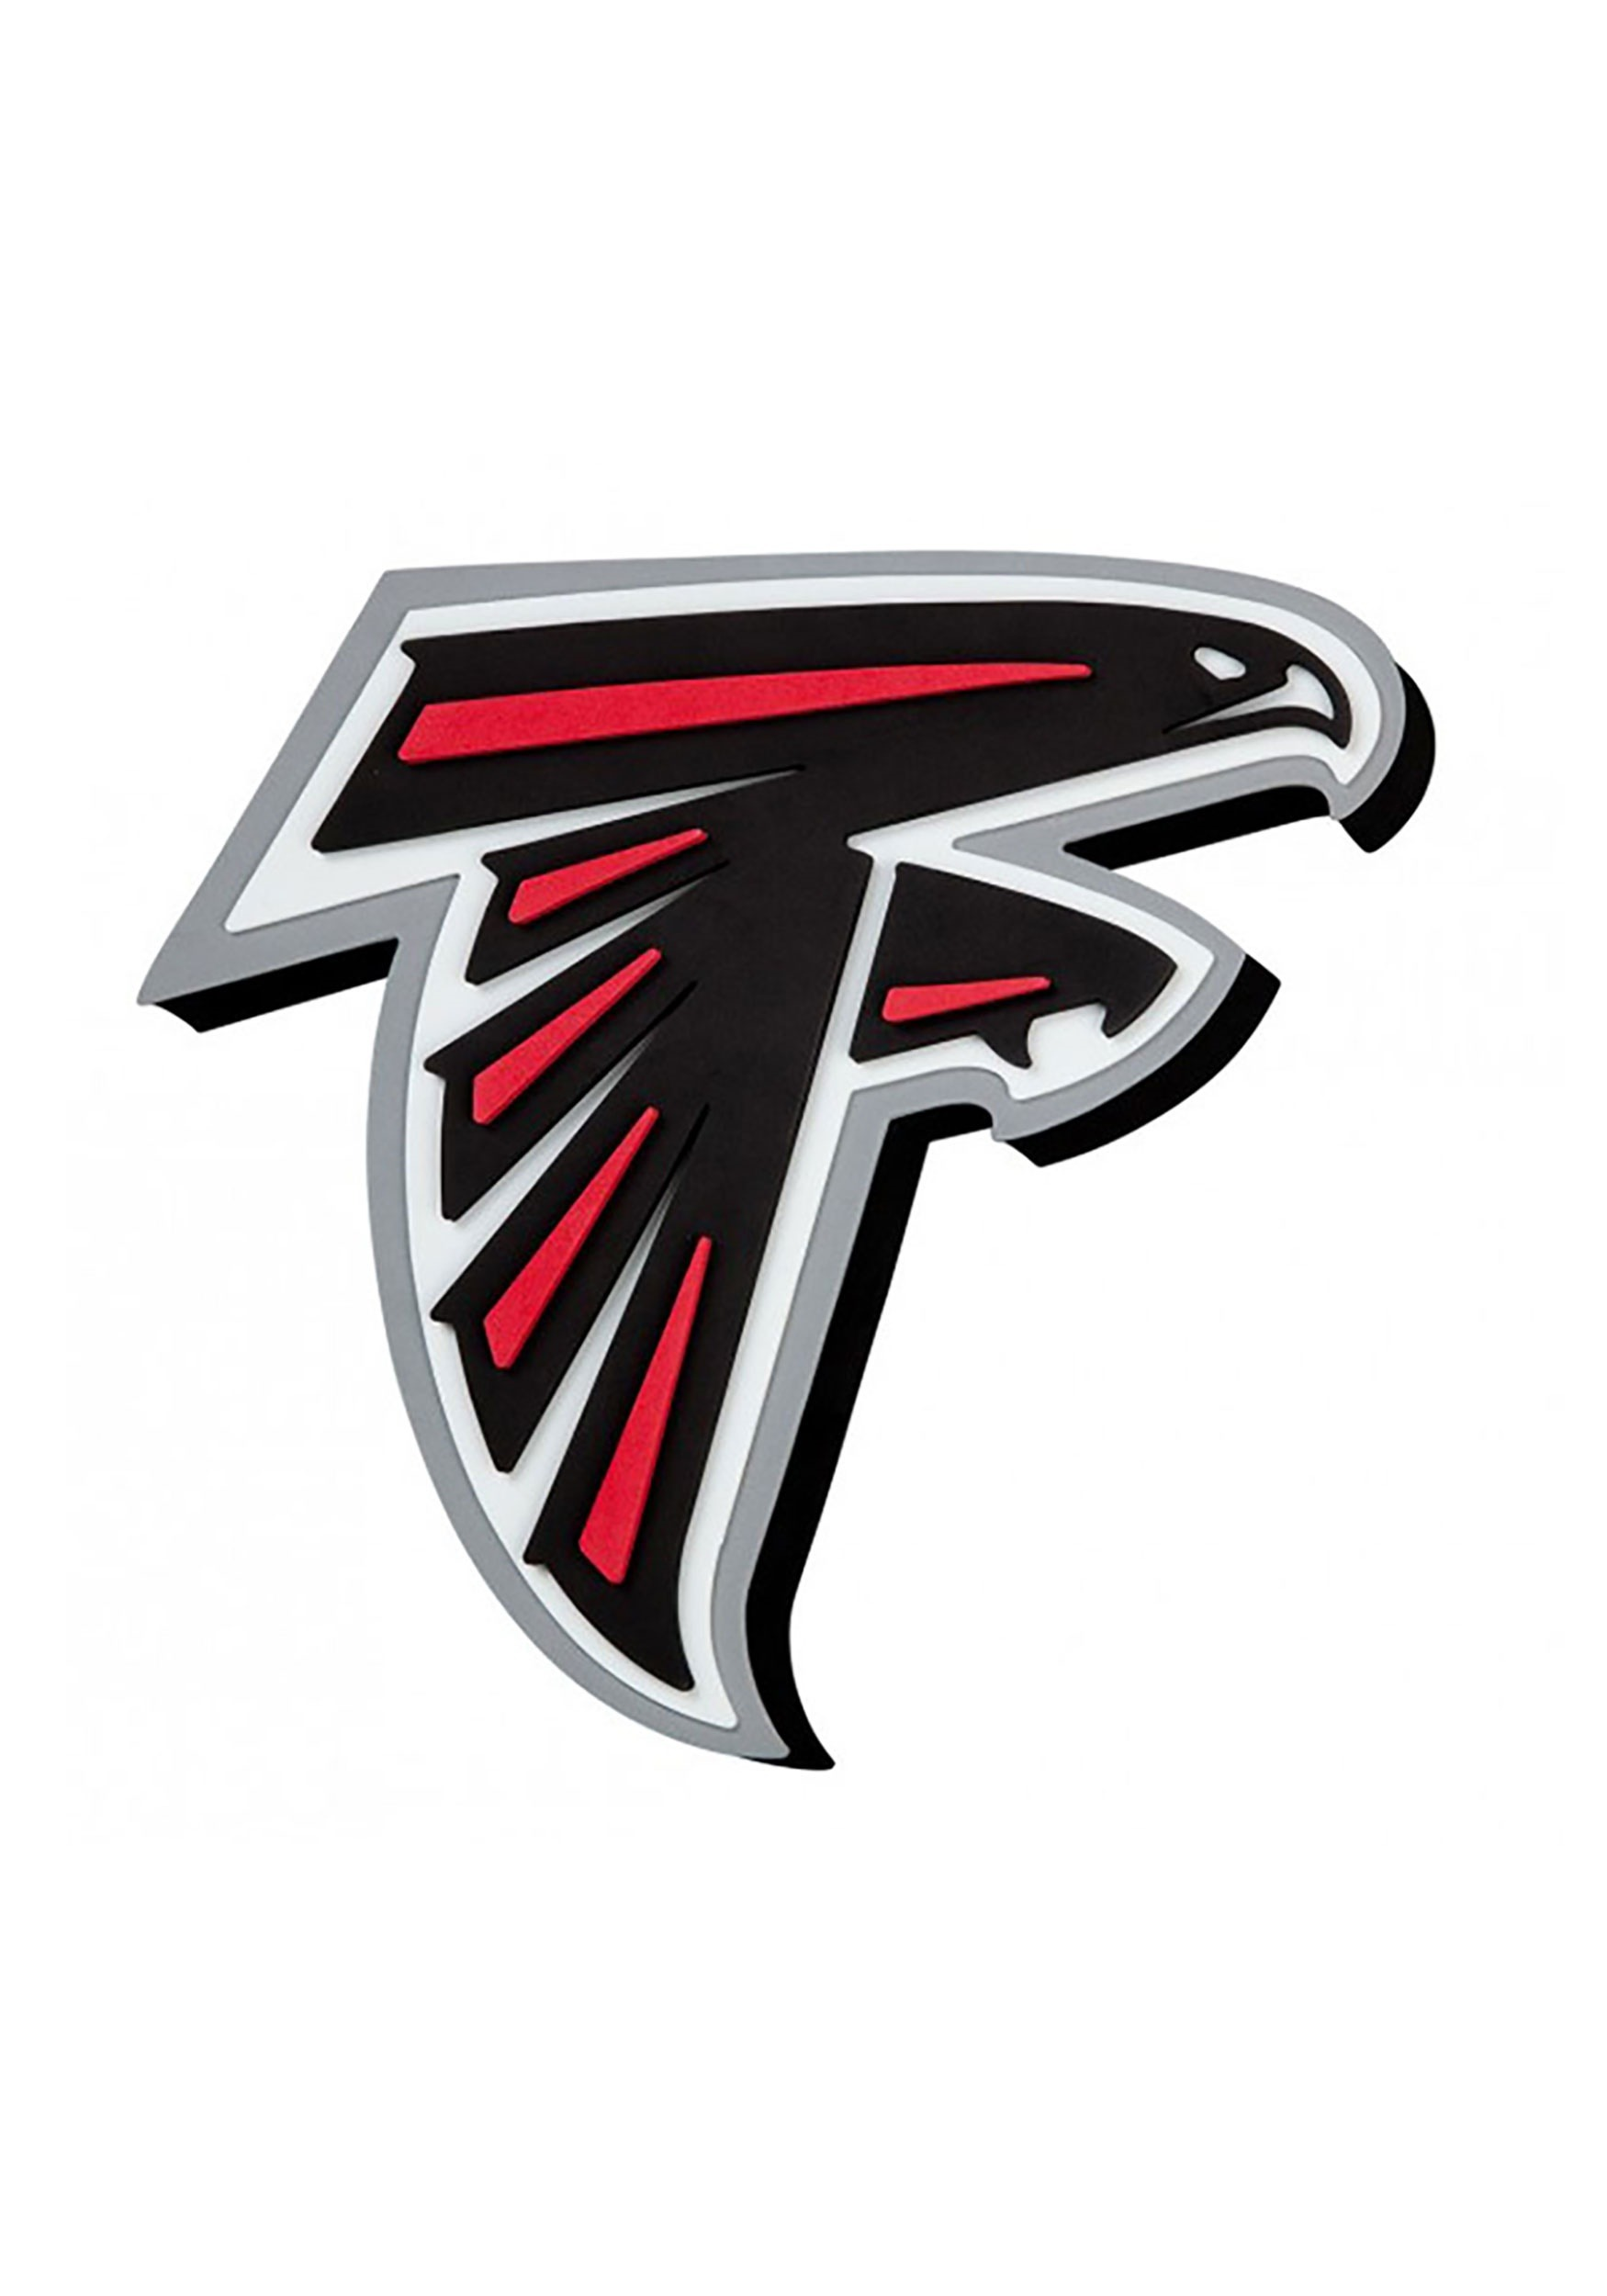 Atlanta Falcons Nfl Logo Foam Sign